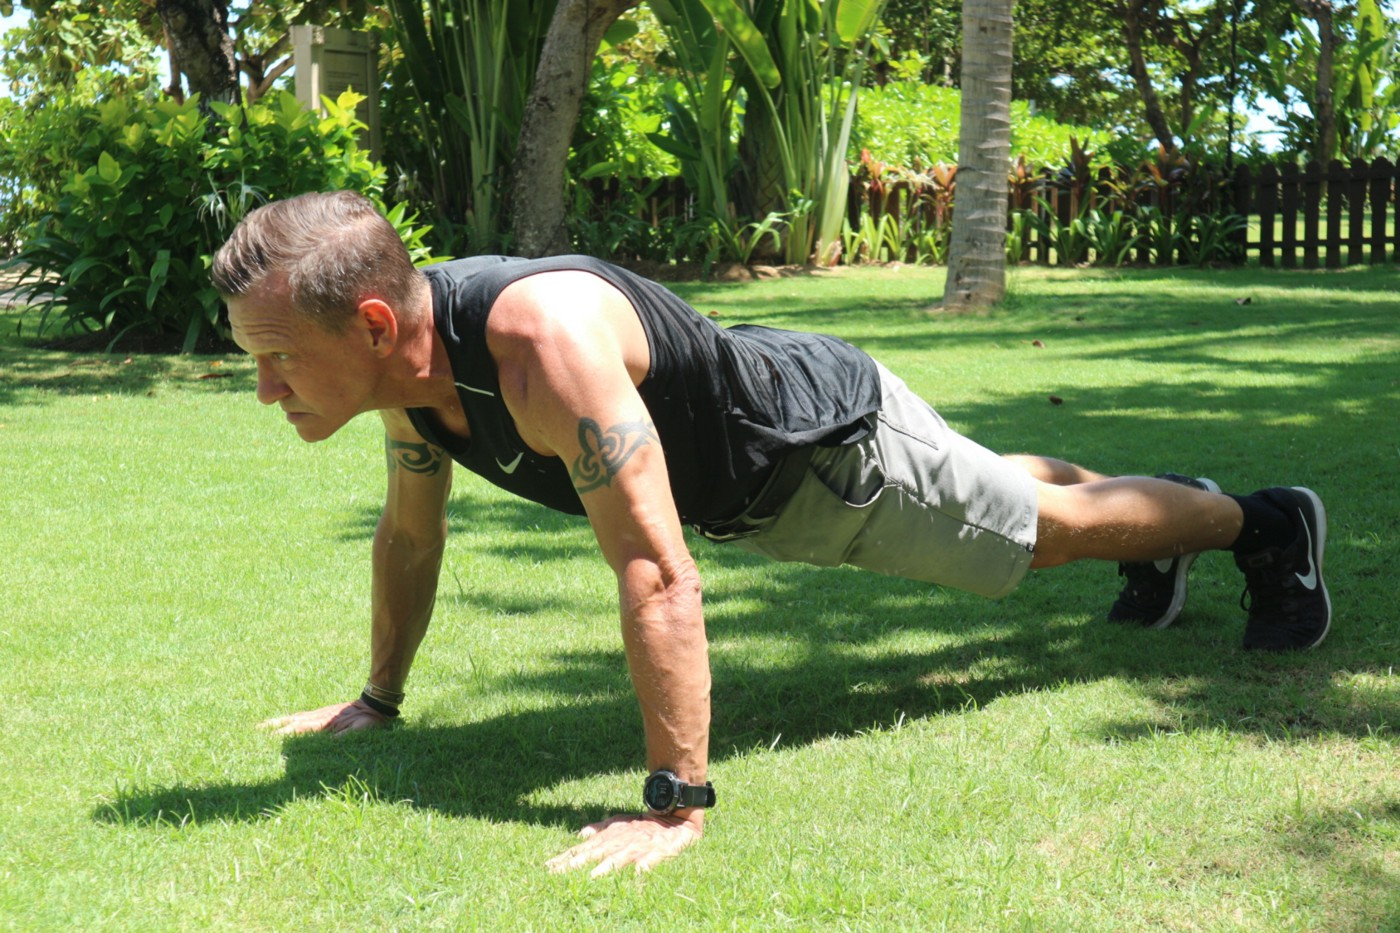 static push-up plank position